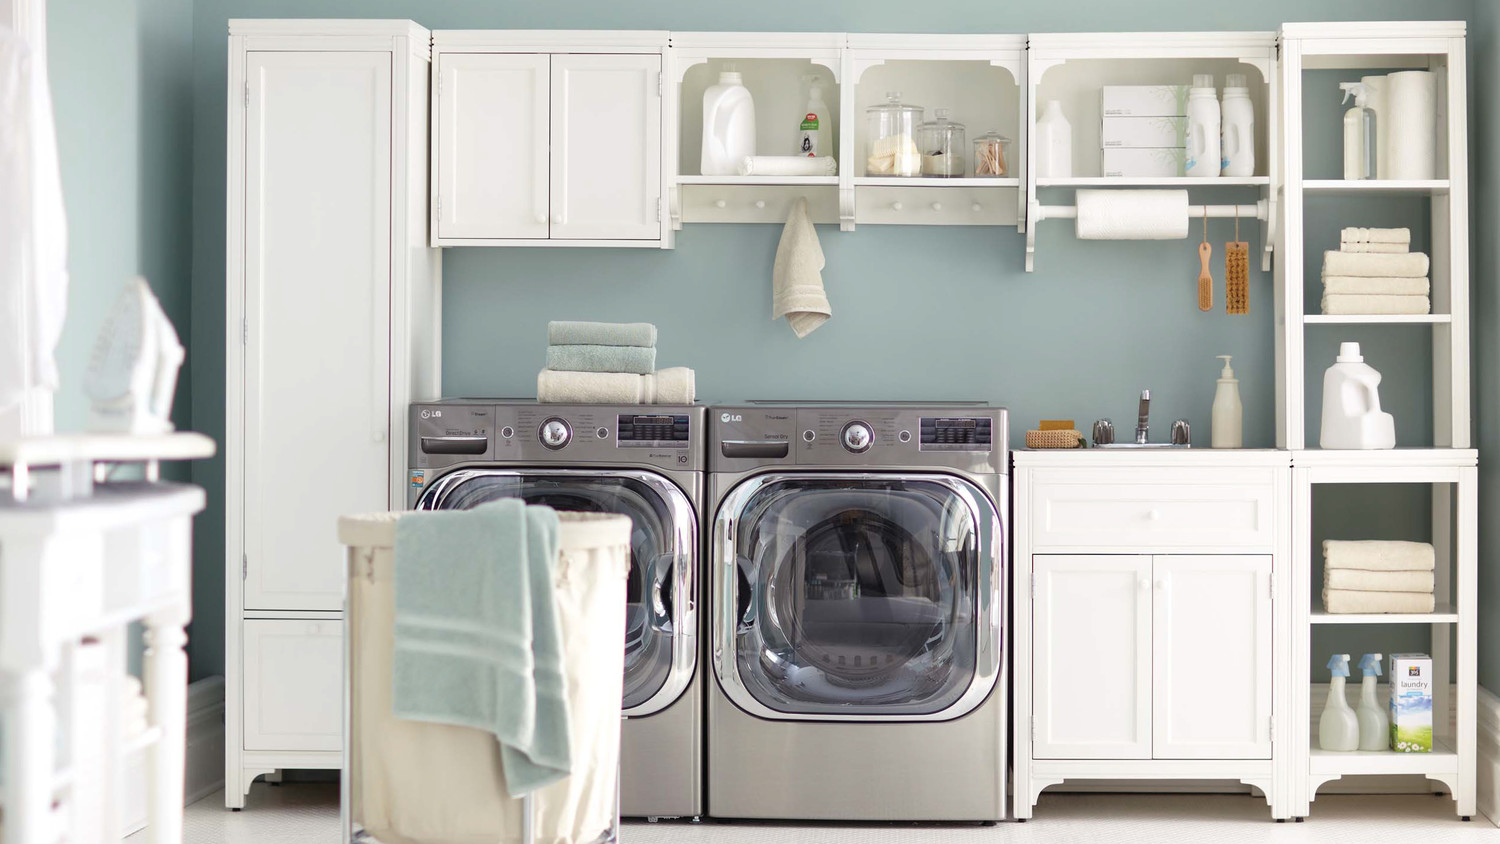 & 12 Essential Laundry-Room Organizing Ideas | Martha Stewart